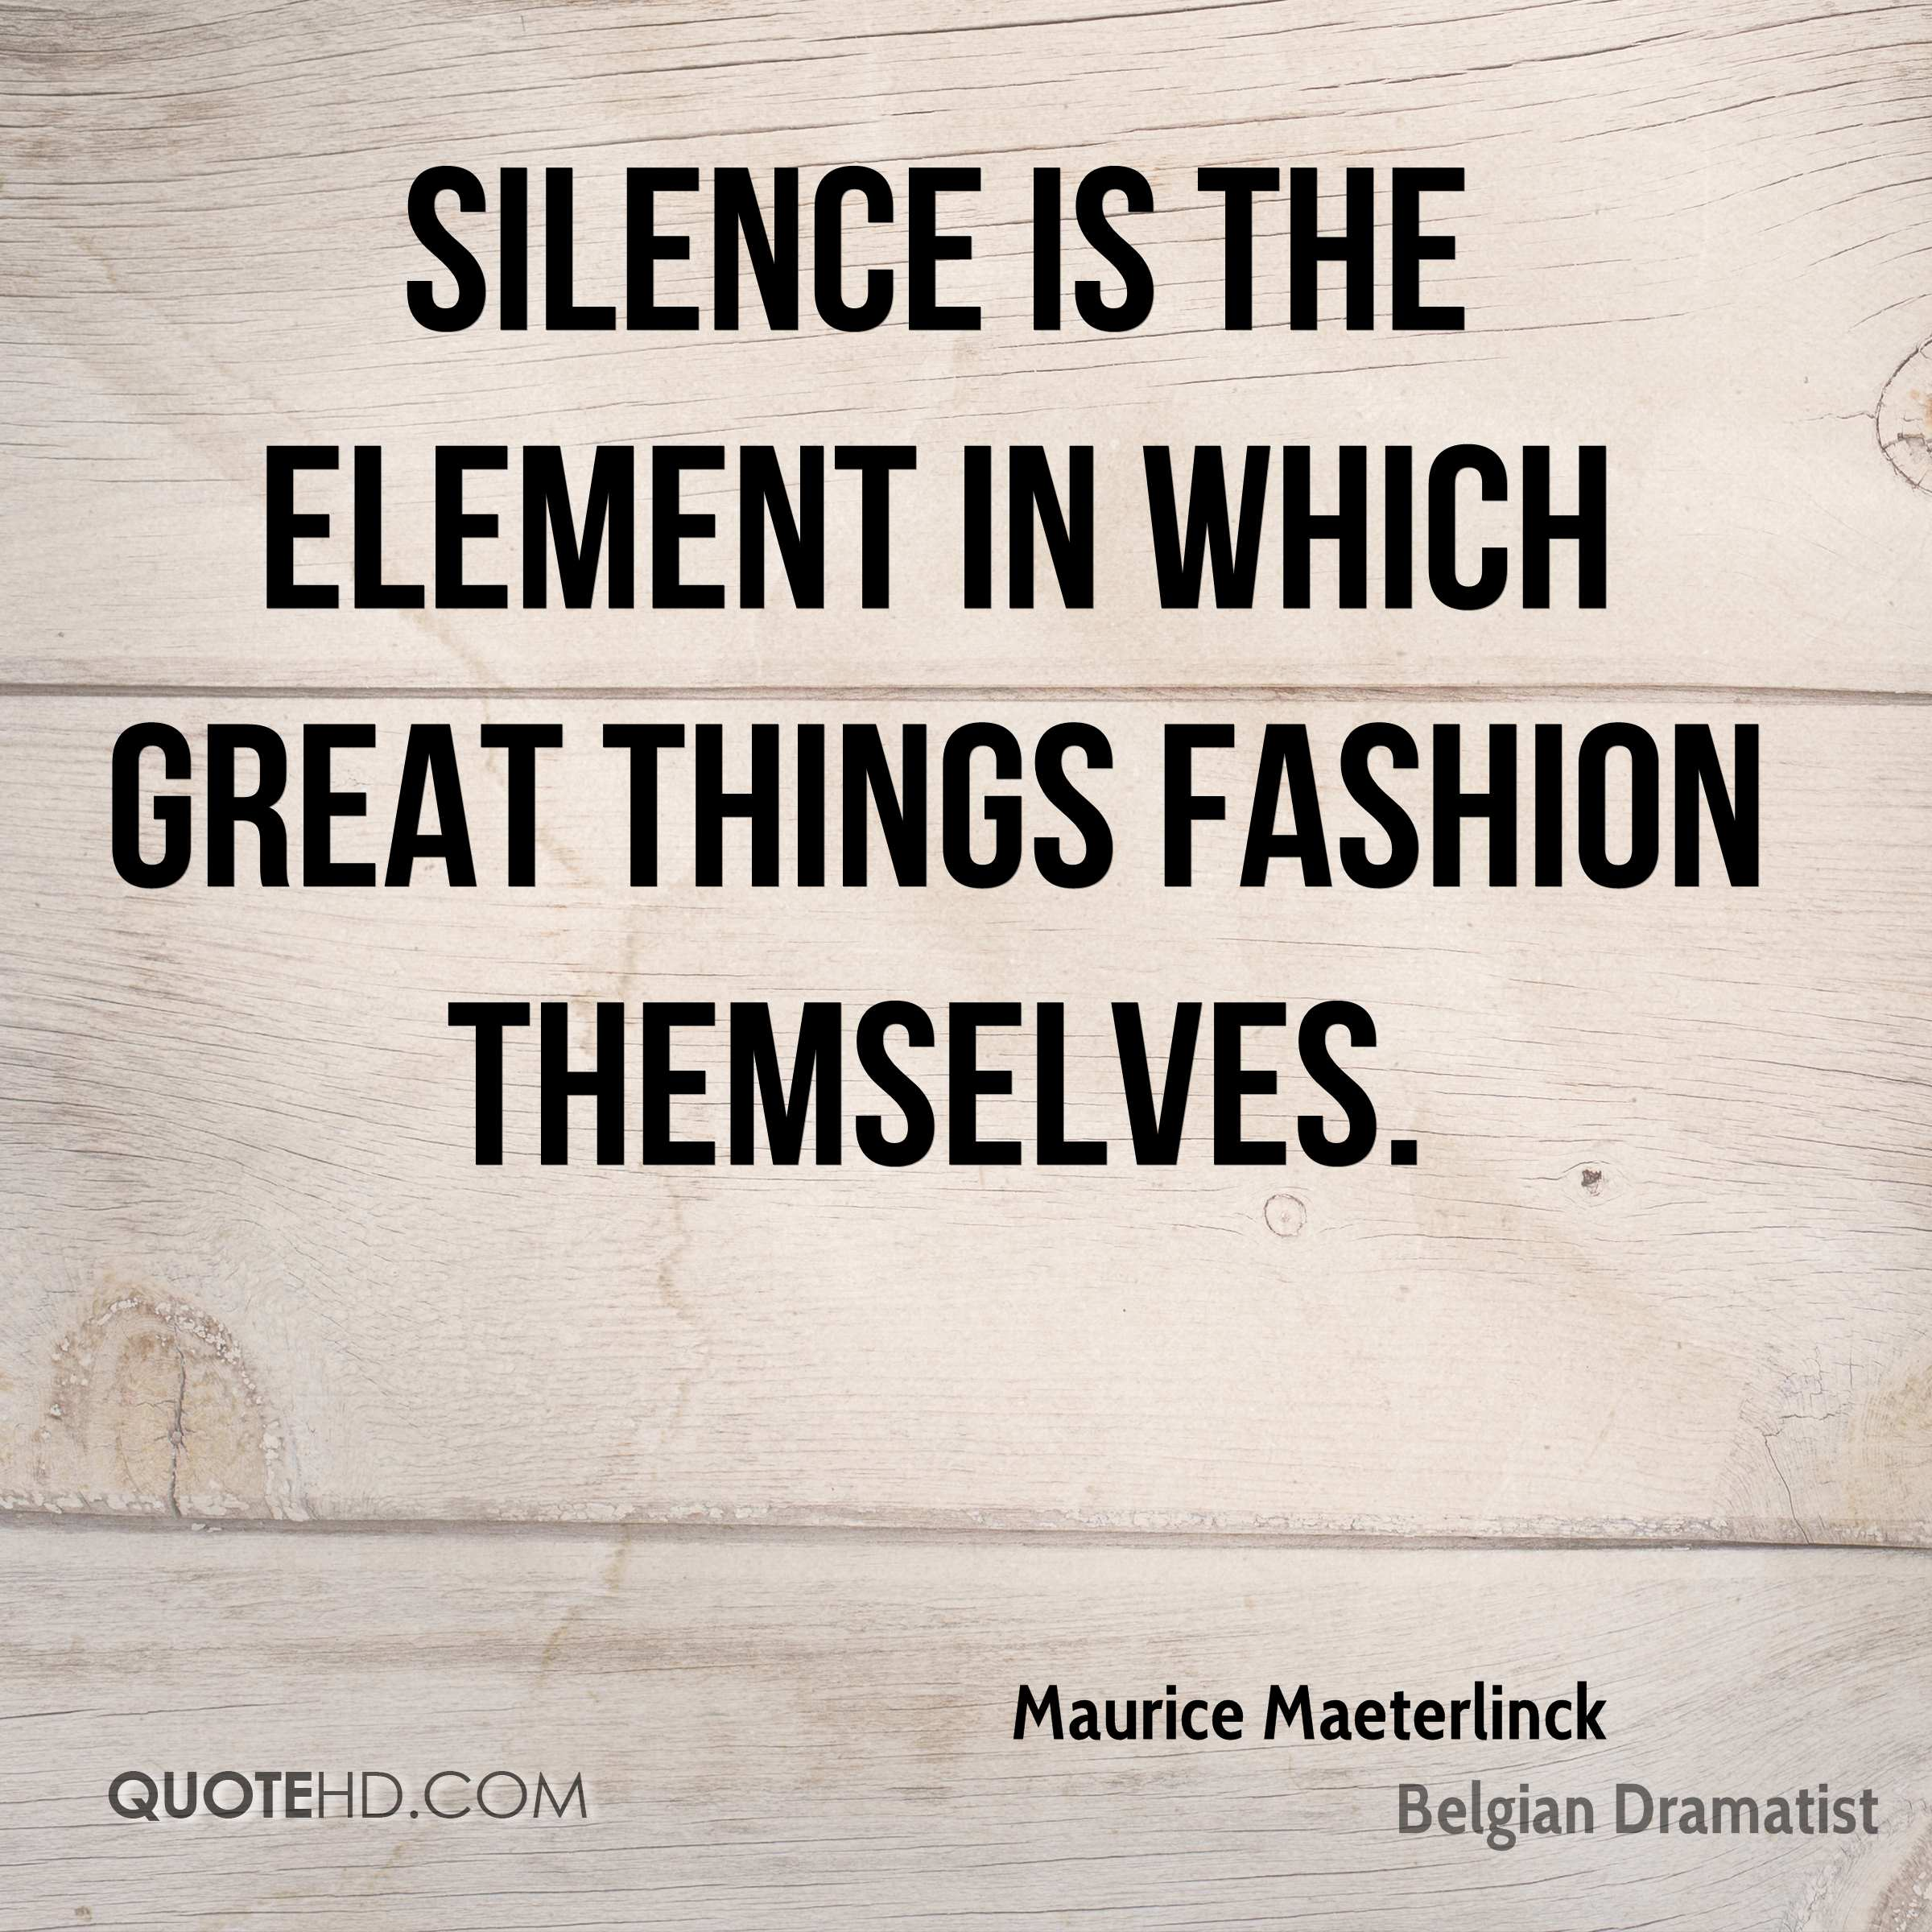 Silence is the element in which great things fashion themselves.